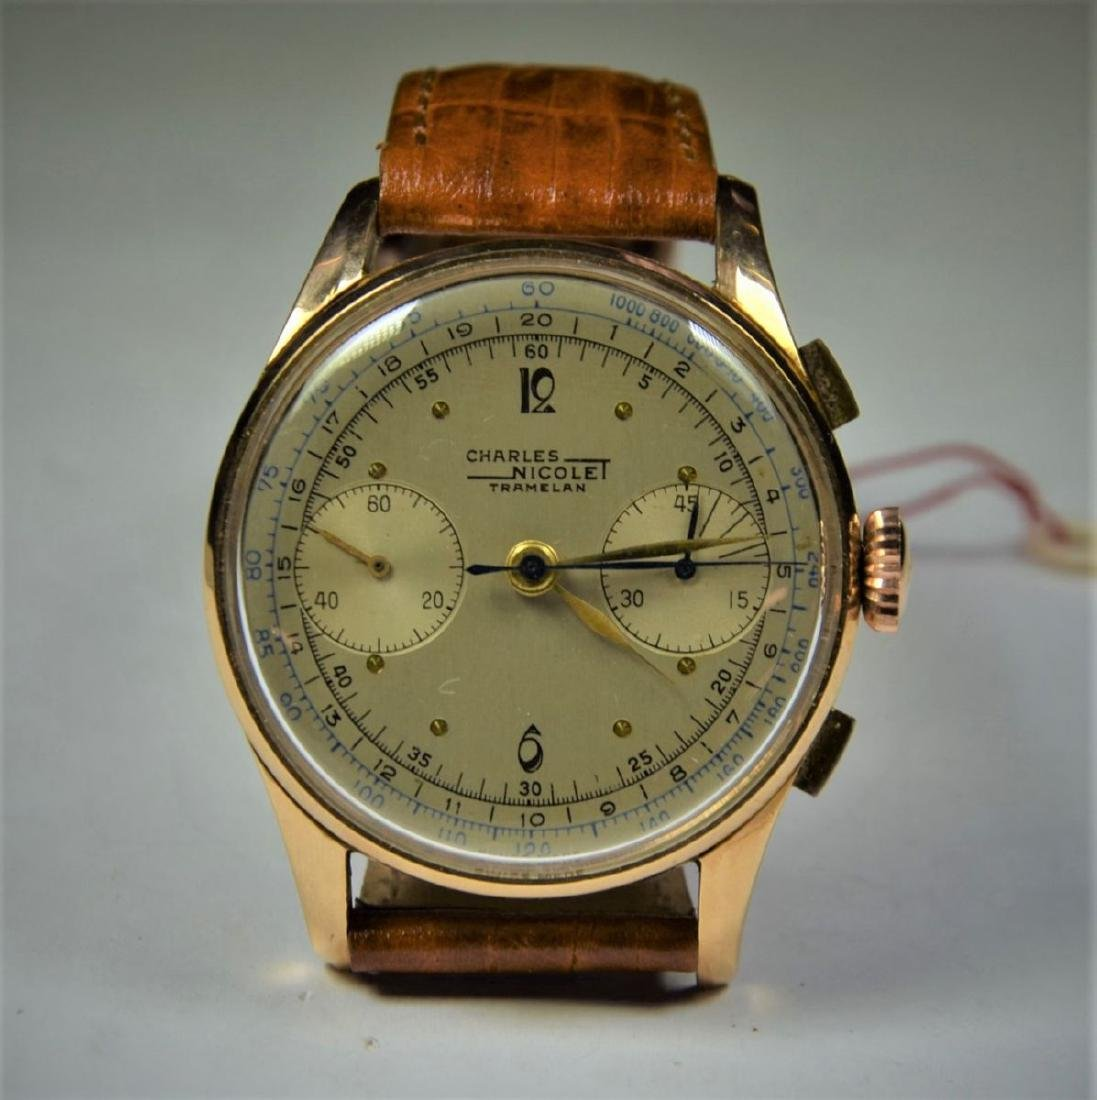 Chronograph CHARLES NICOLET in rose gold 18ct. Diameter